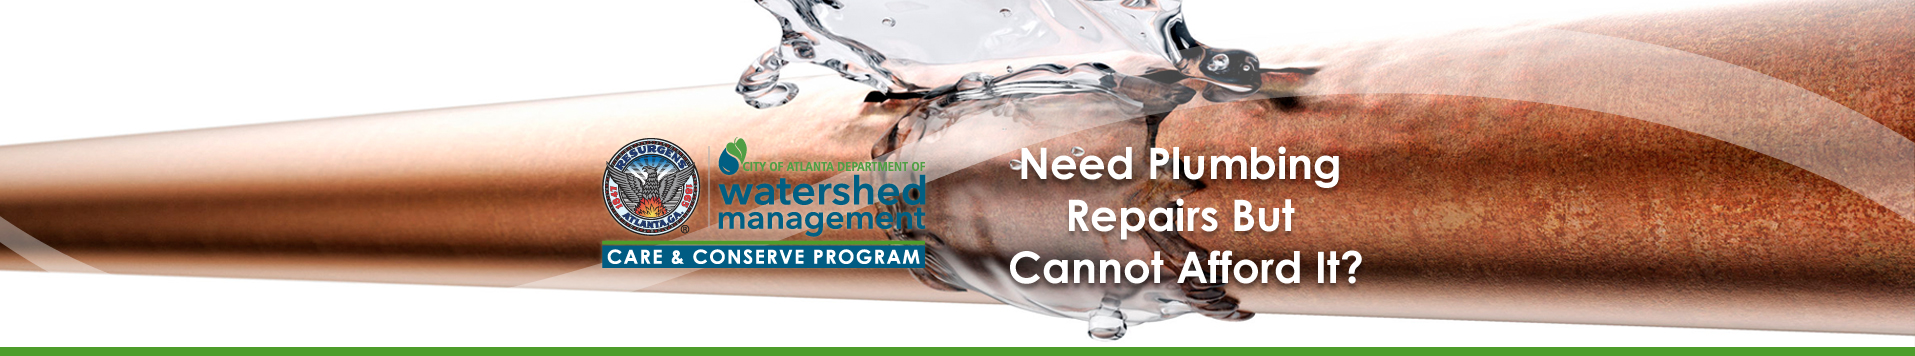 Need Plumbing Repairs But Cannot Afford It? - Care and Conserve Program